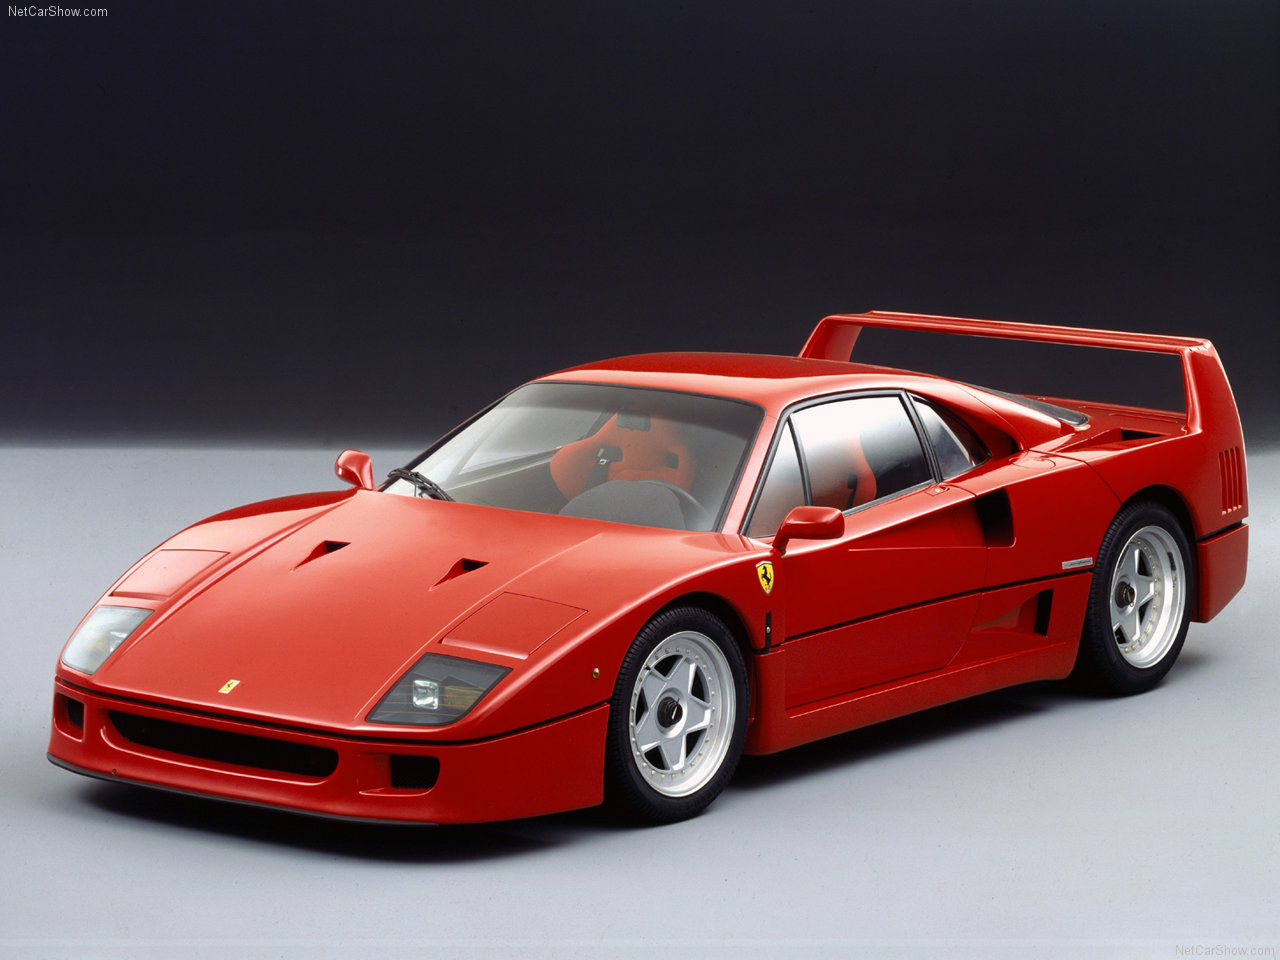 ferrari f40 technische daten und verbrauch. Black Bedroom Furniture Sets. Home Design Ideas